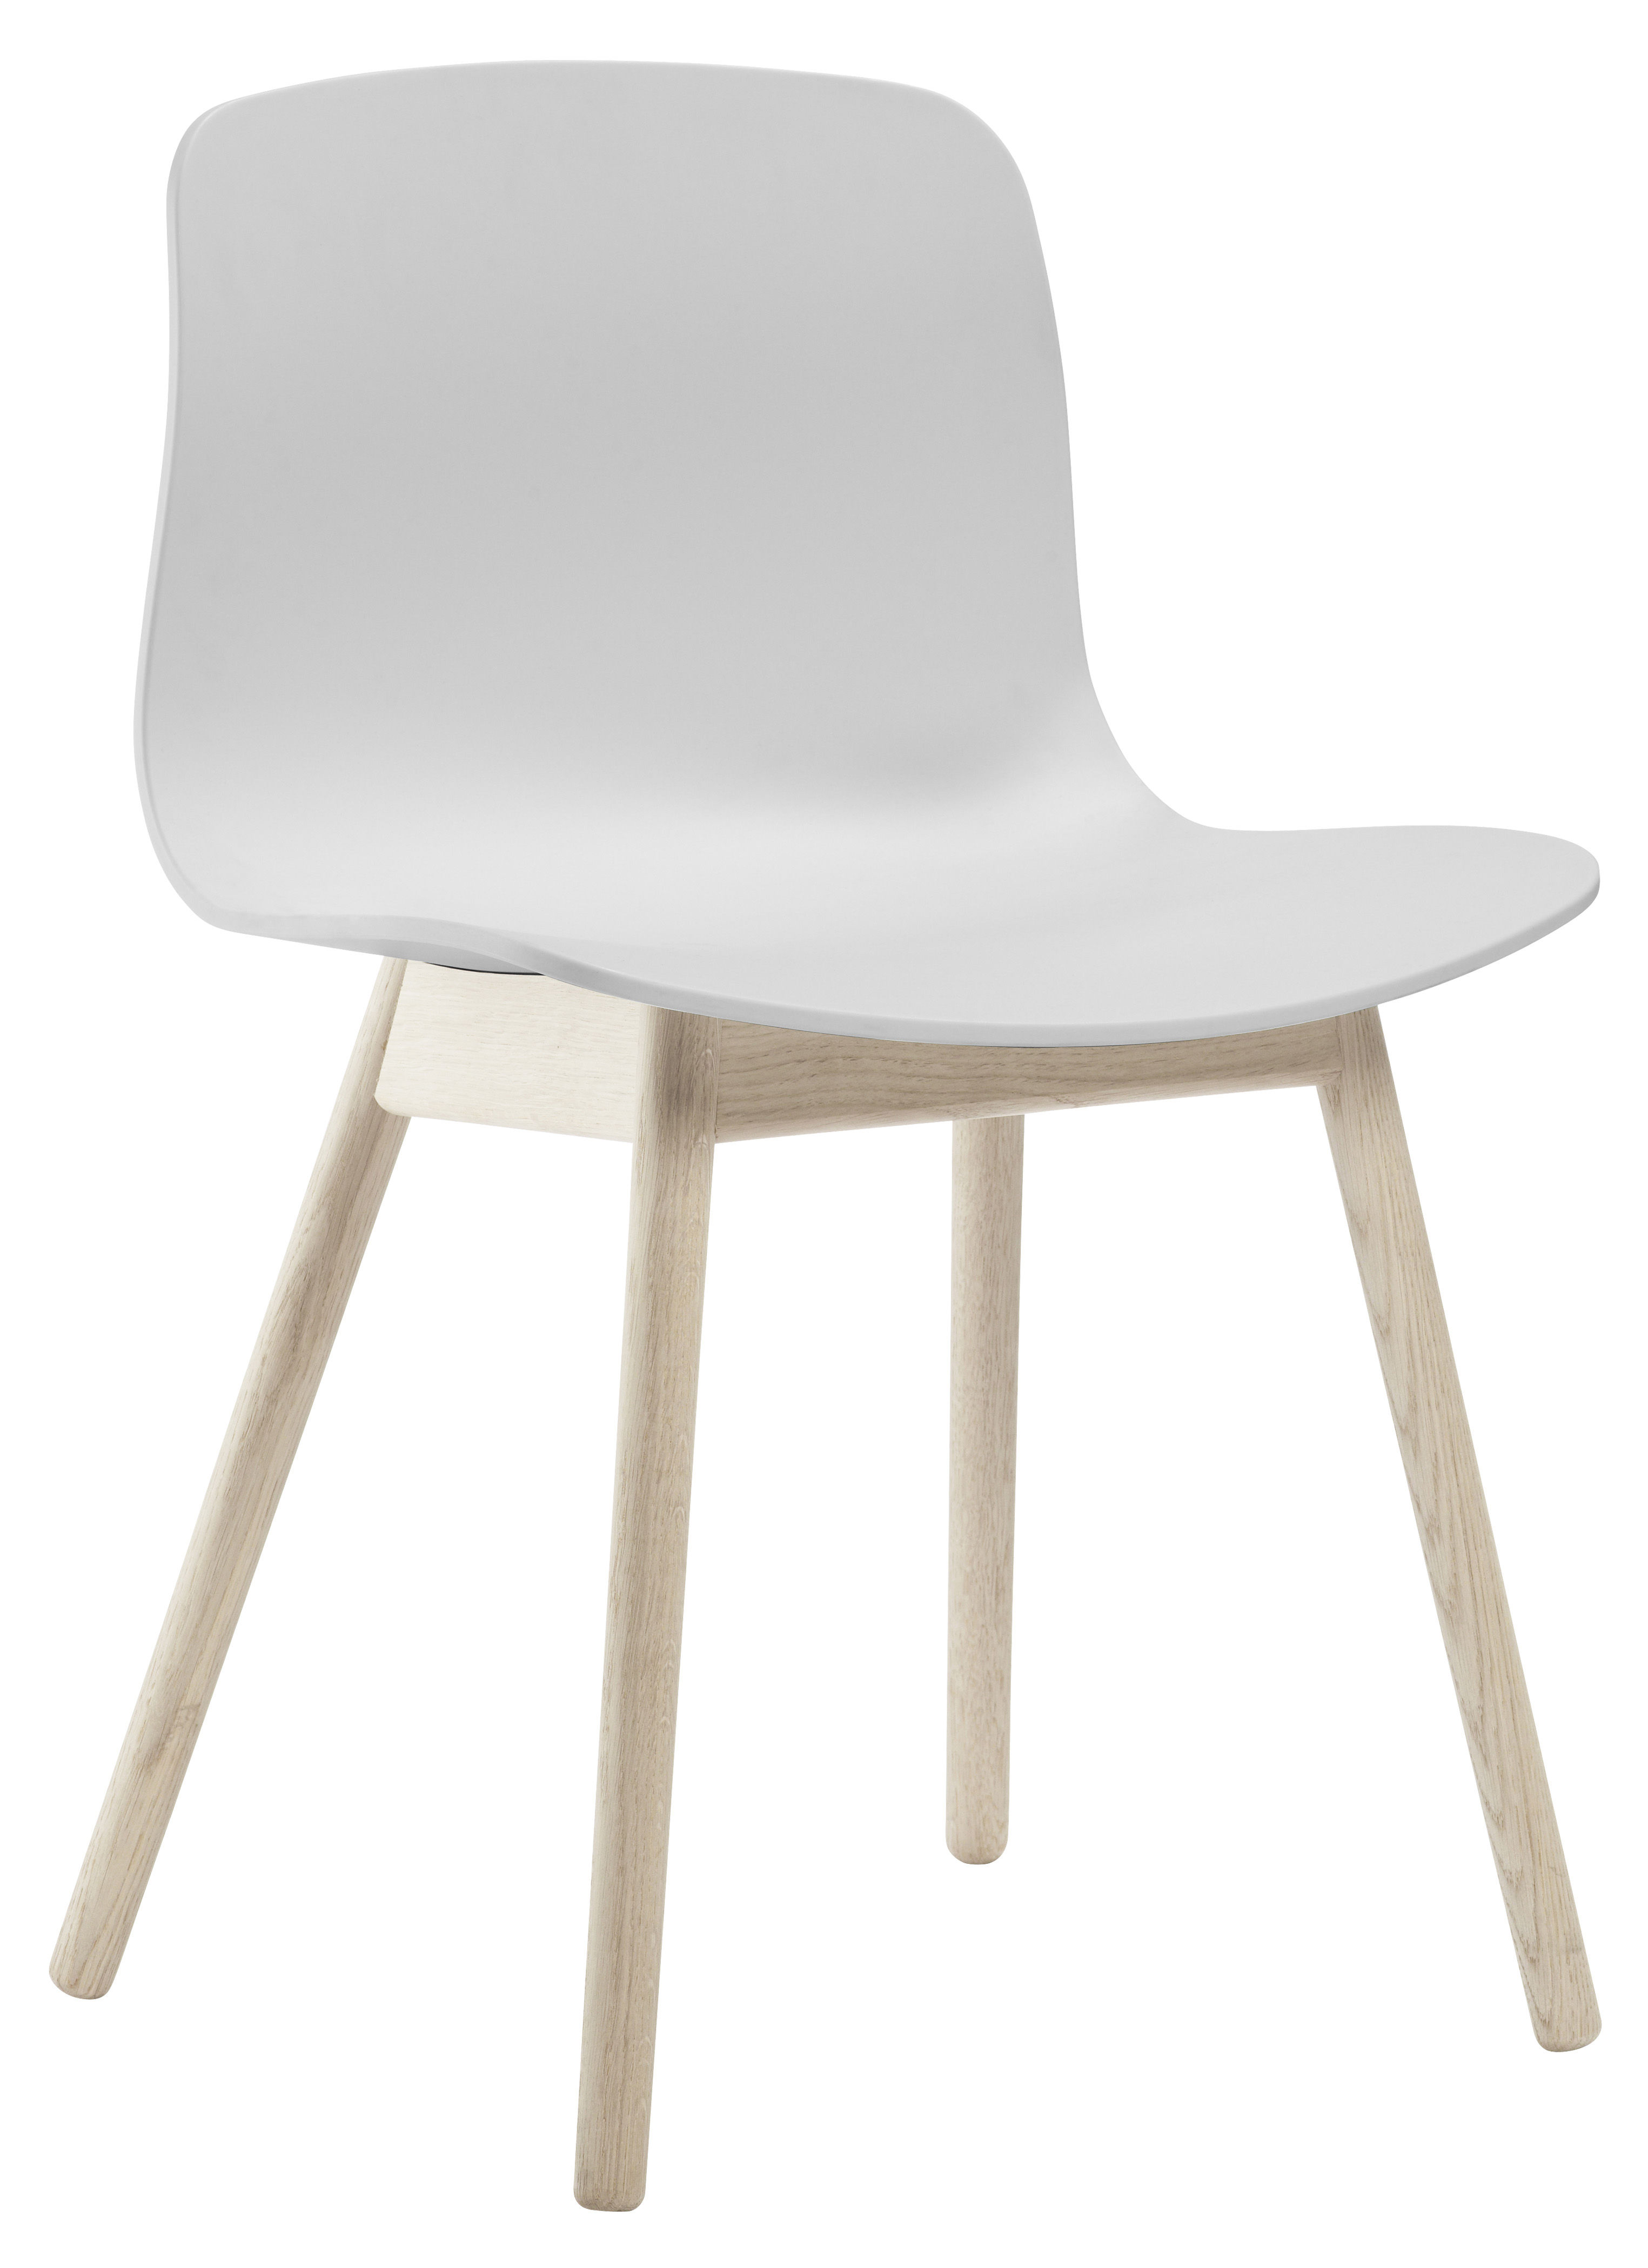 chaise about a chair aac12 plastique pieds bois blanc pieds bois naturel hay. Black Bedroom Furniture Sets. Home Design Ideas